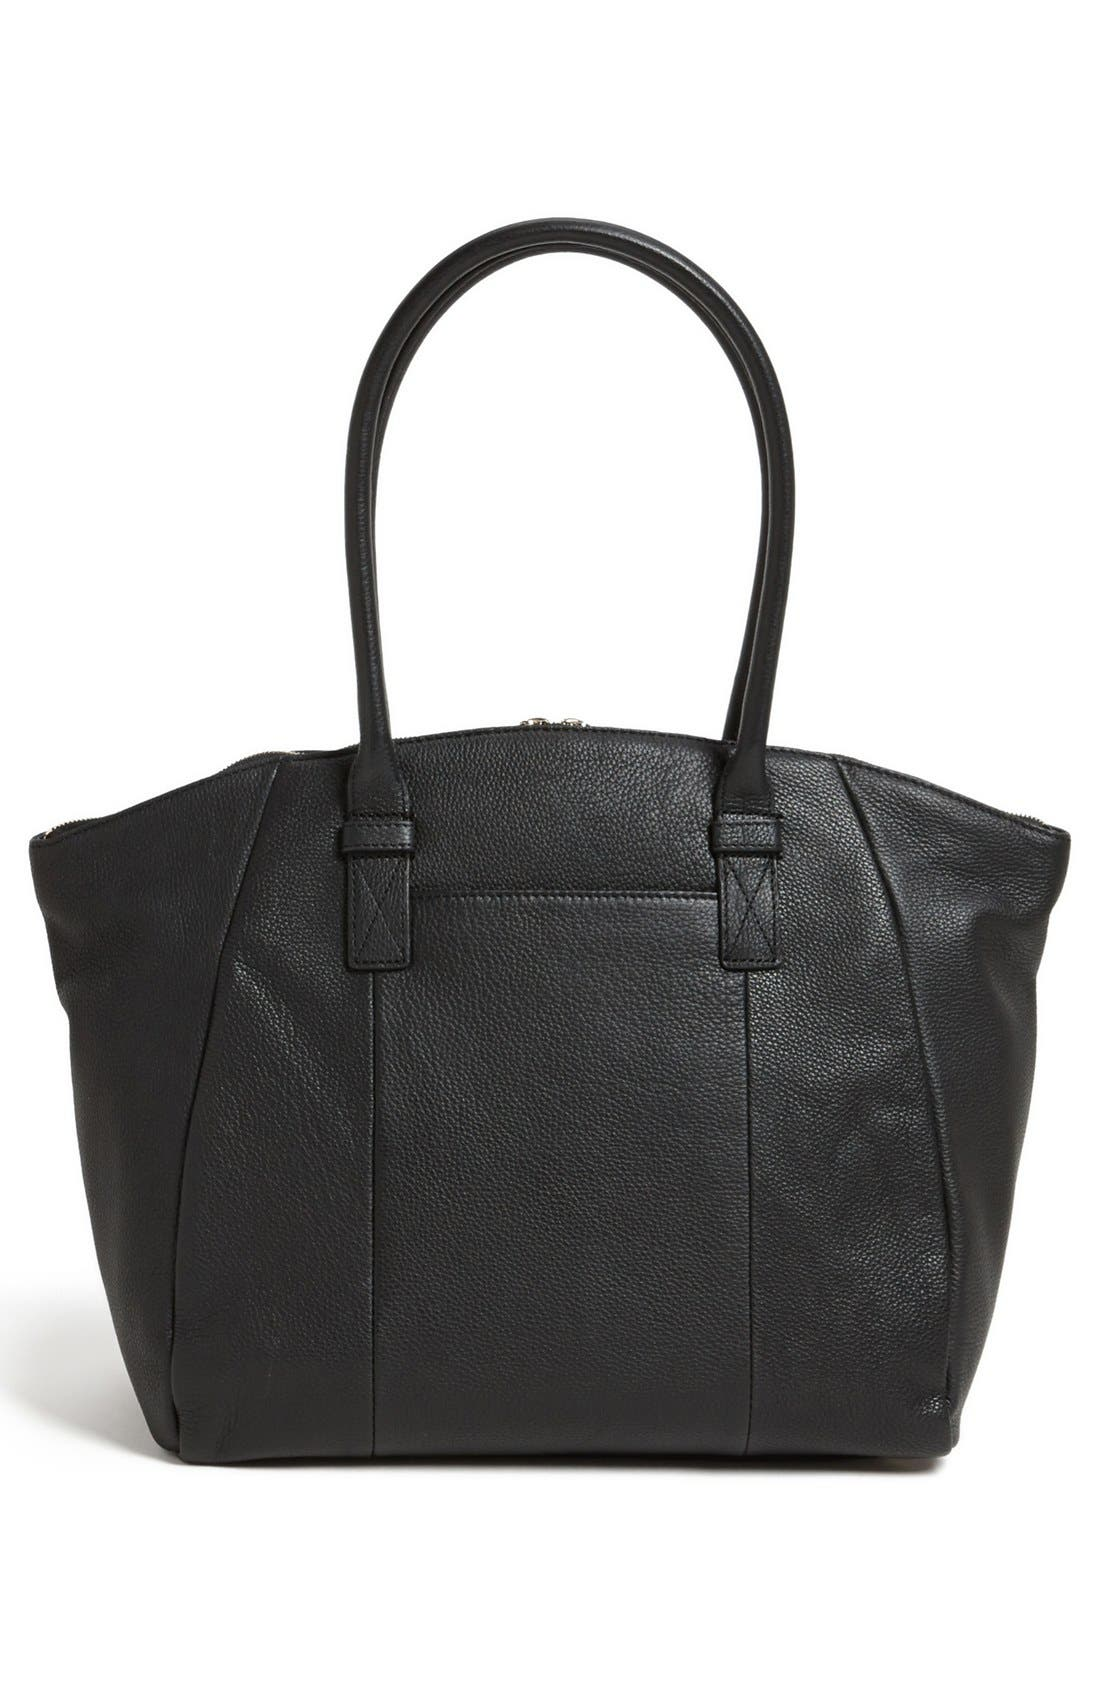 VINCE CAMUTO, 'Jace' Leather Tote, Alternate thumbnail 3, color, 002